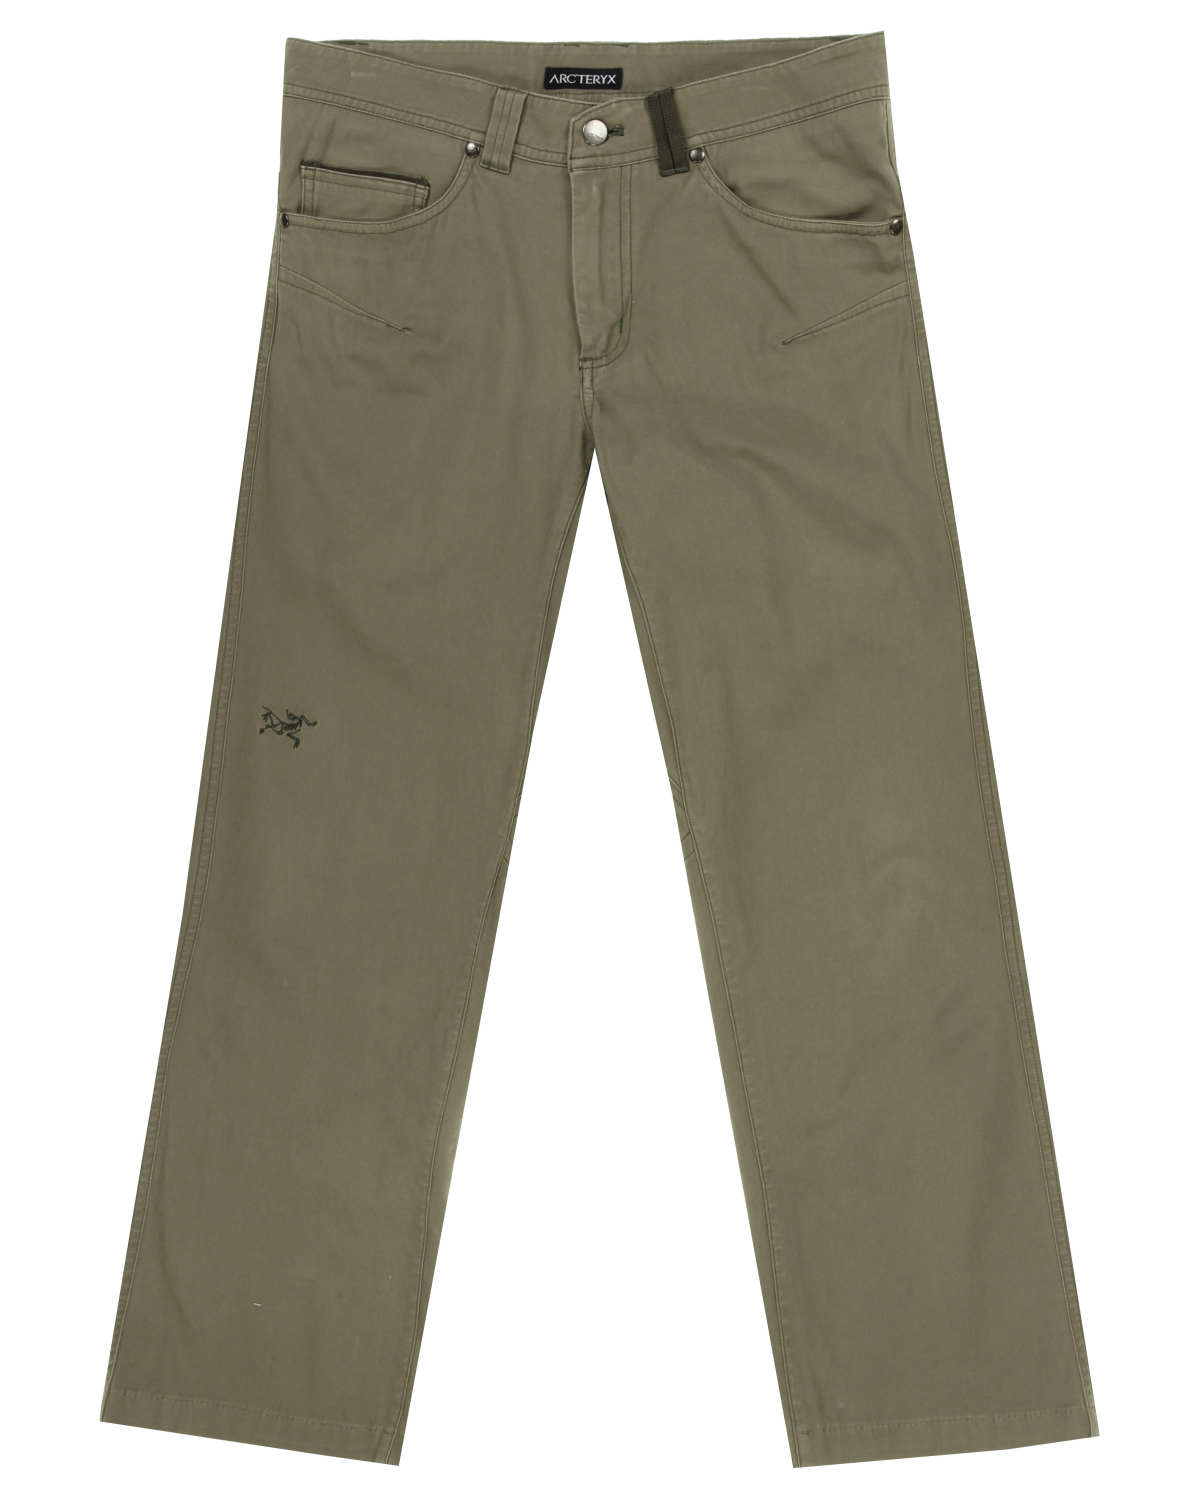 Main product image: Spotter Pant Men's